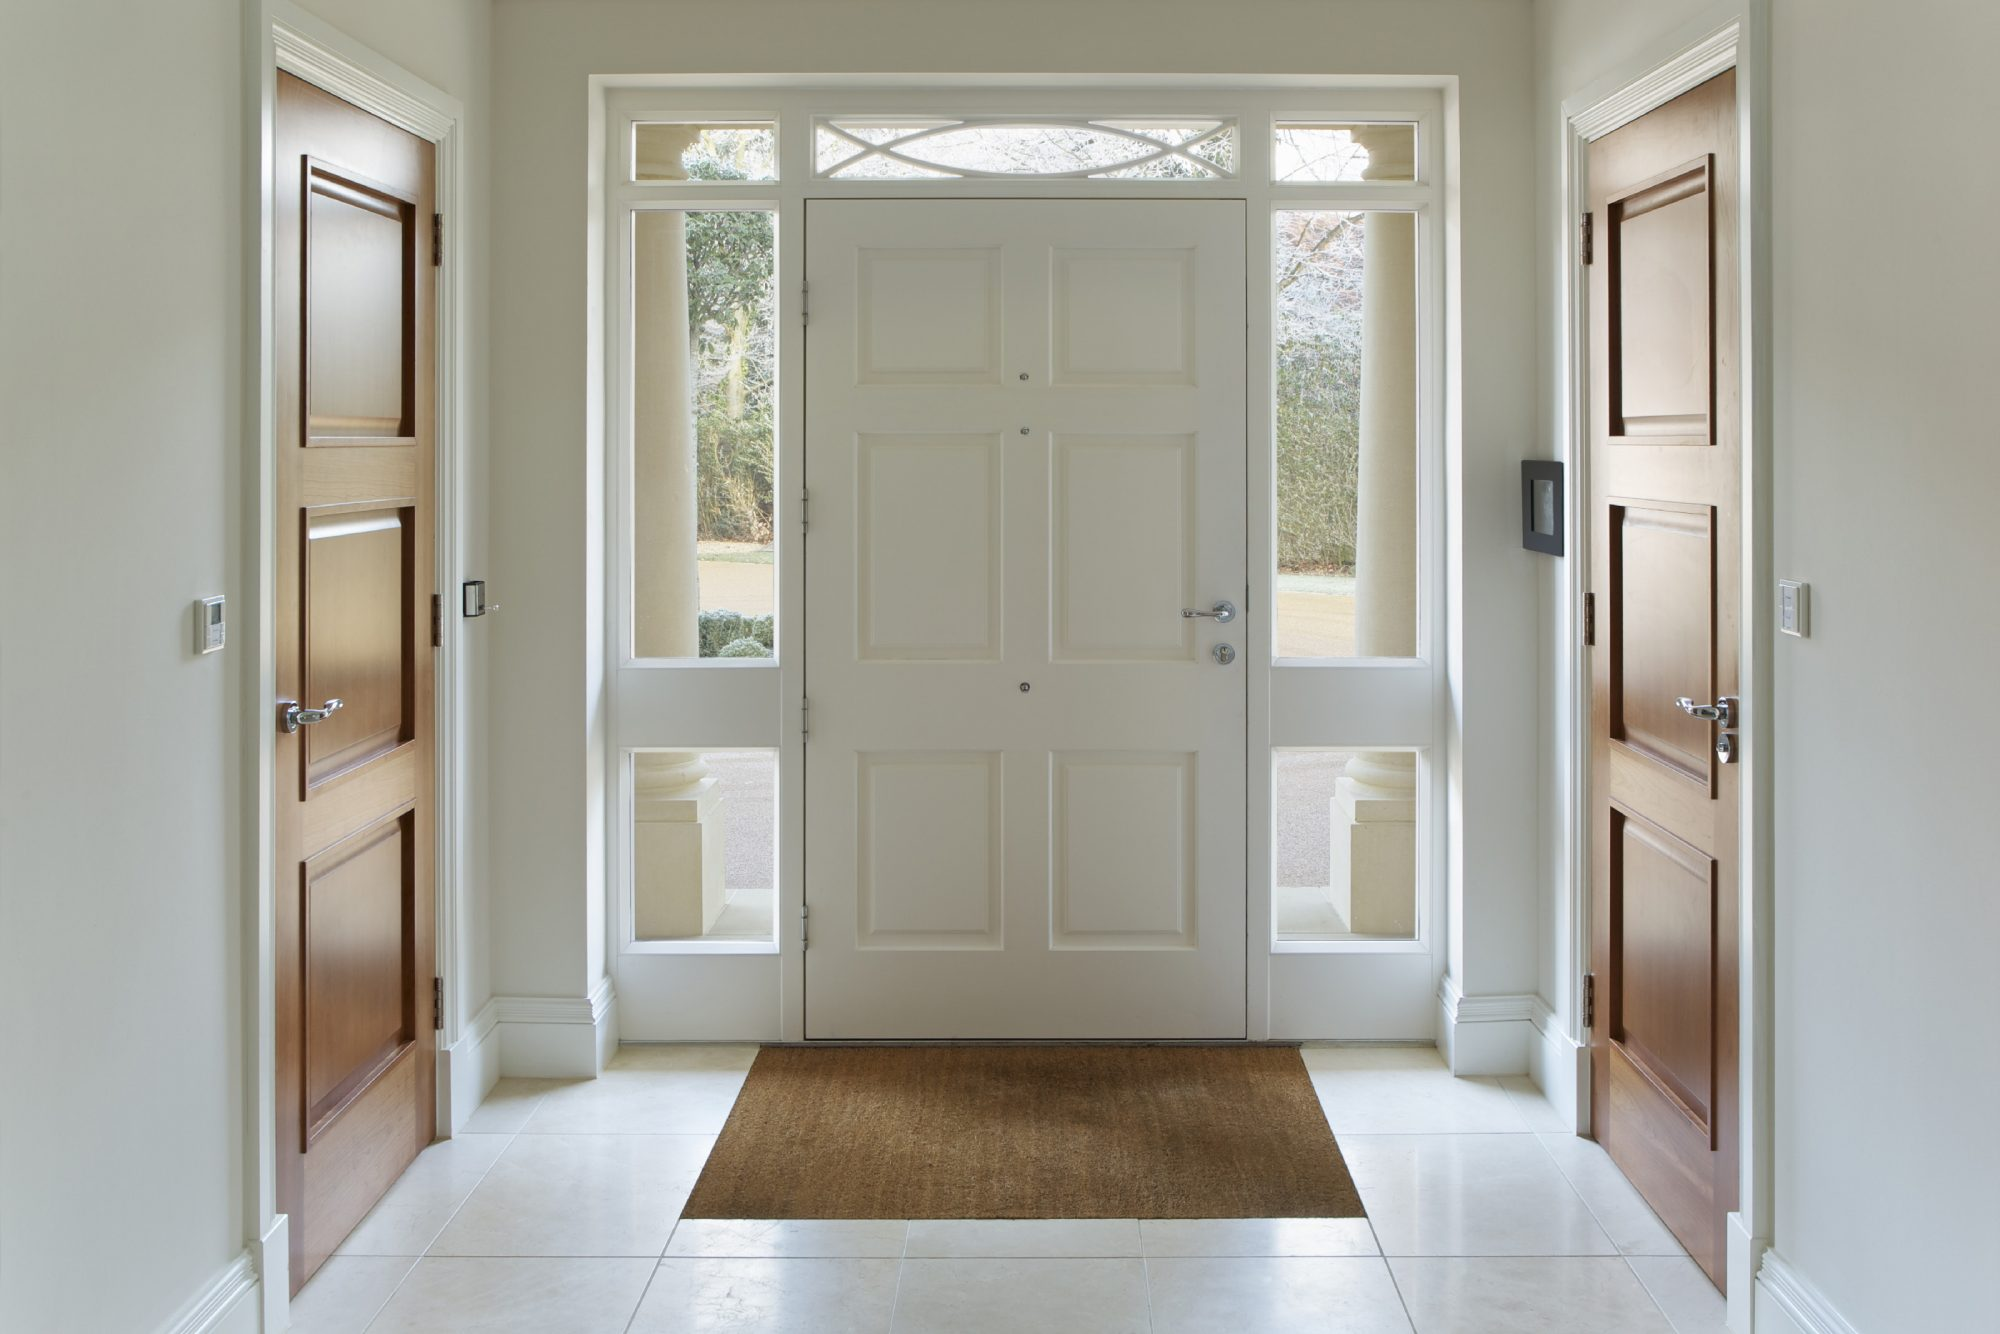 New Door Replacement Windows How Much House Projects Cost